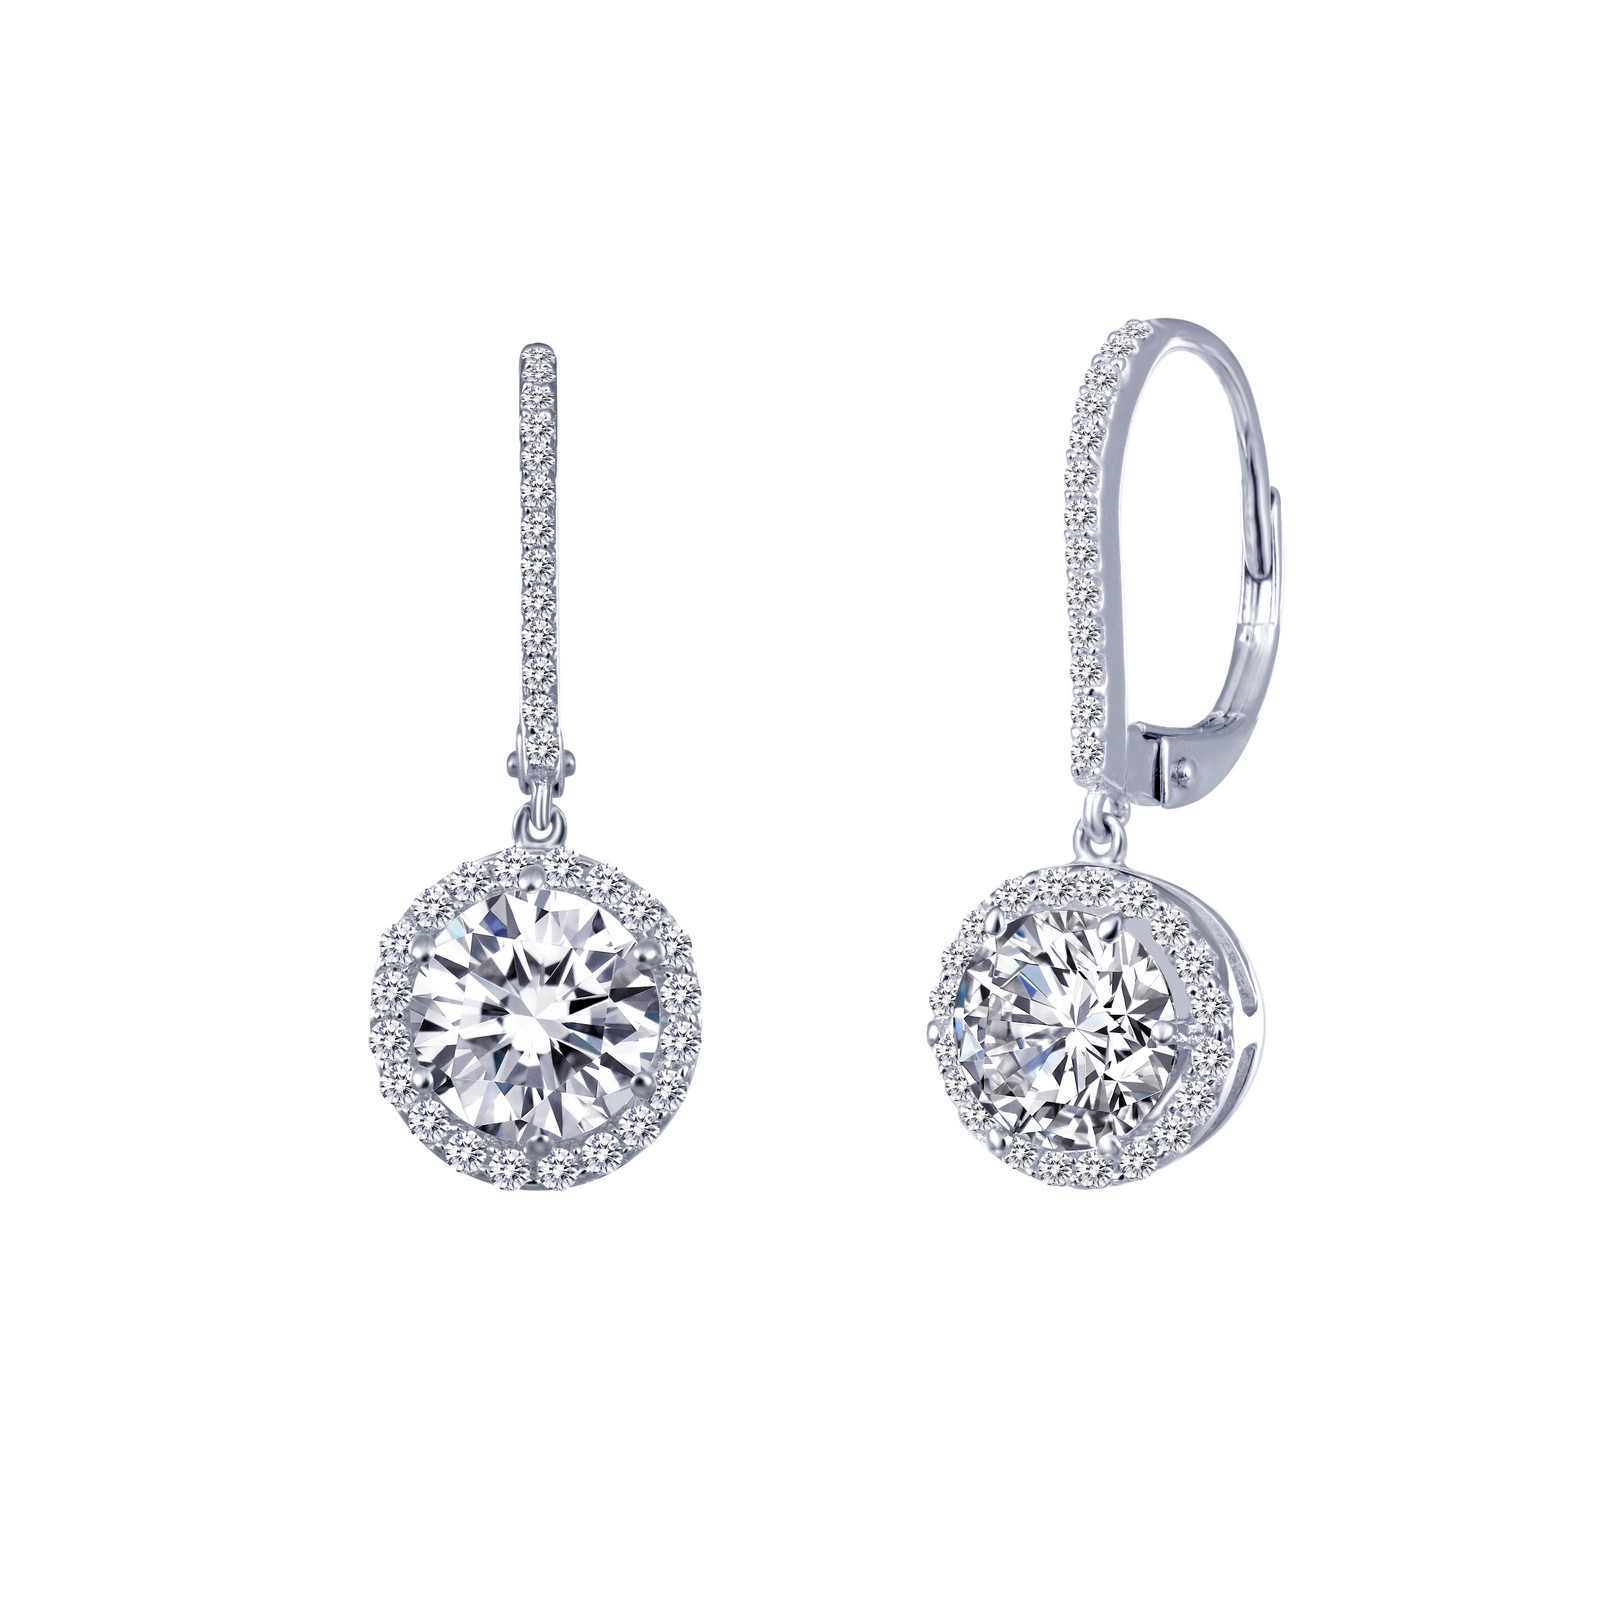 Classic Earrings by Lafonn Jewelry